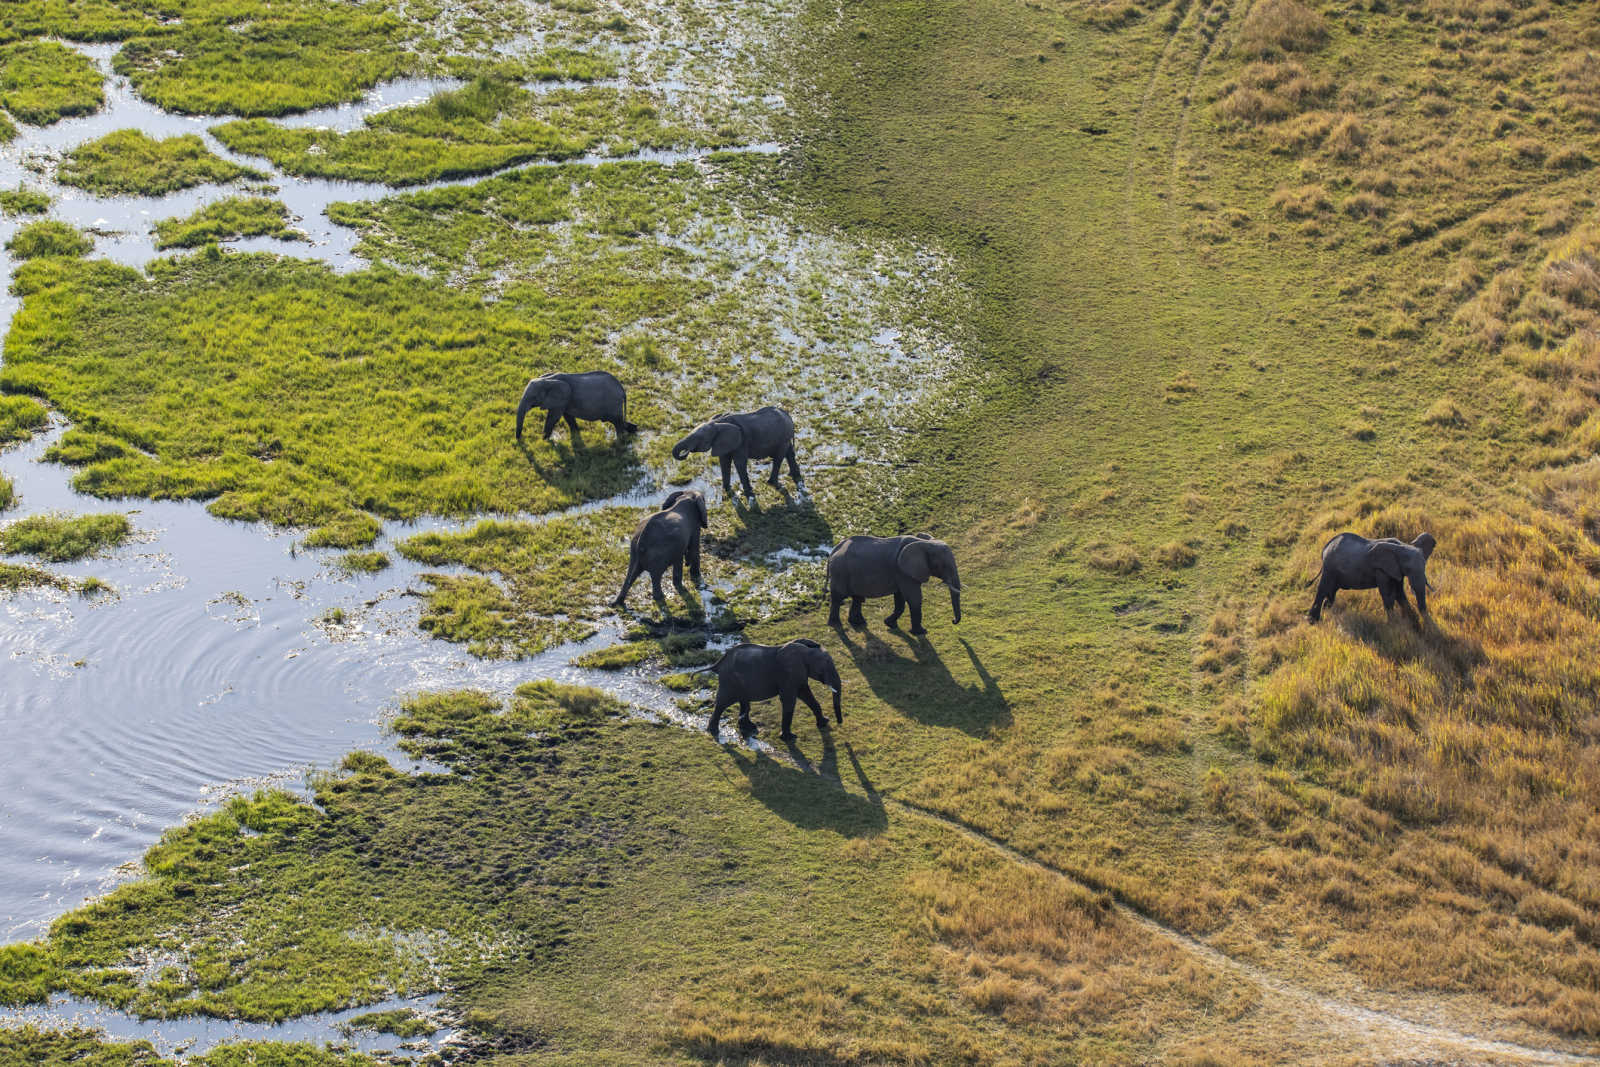 See a group of African elephants (Loxodonta africana) in Khwai river, Moremi National Park while on a Botswana safari